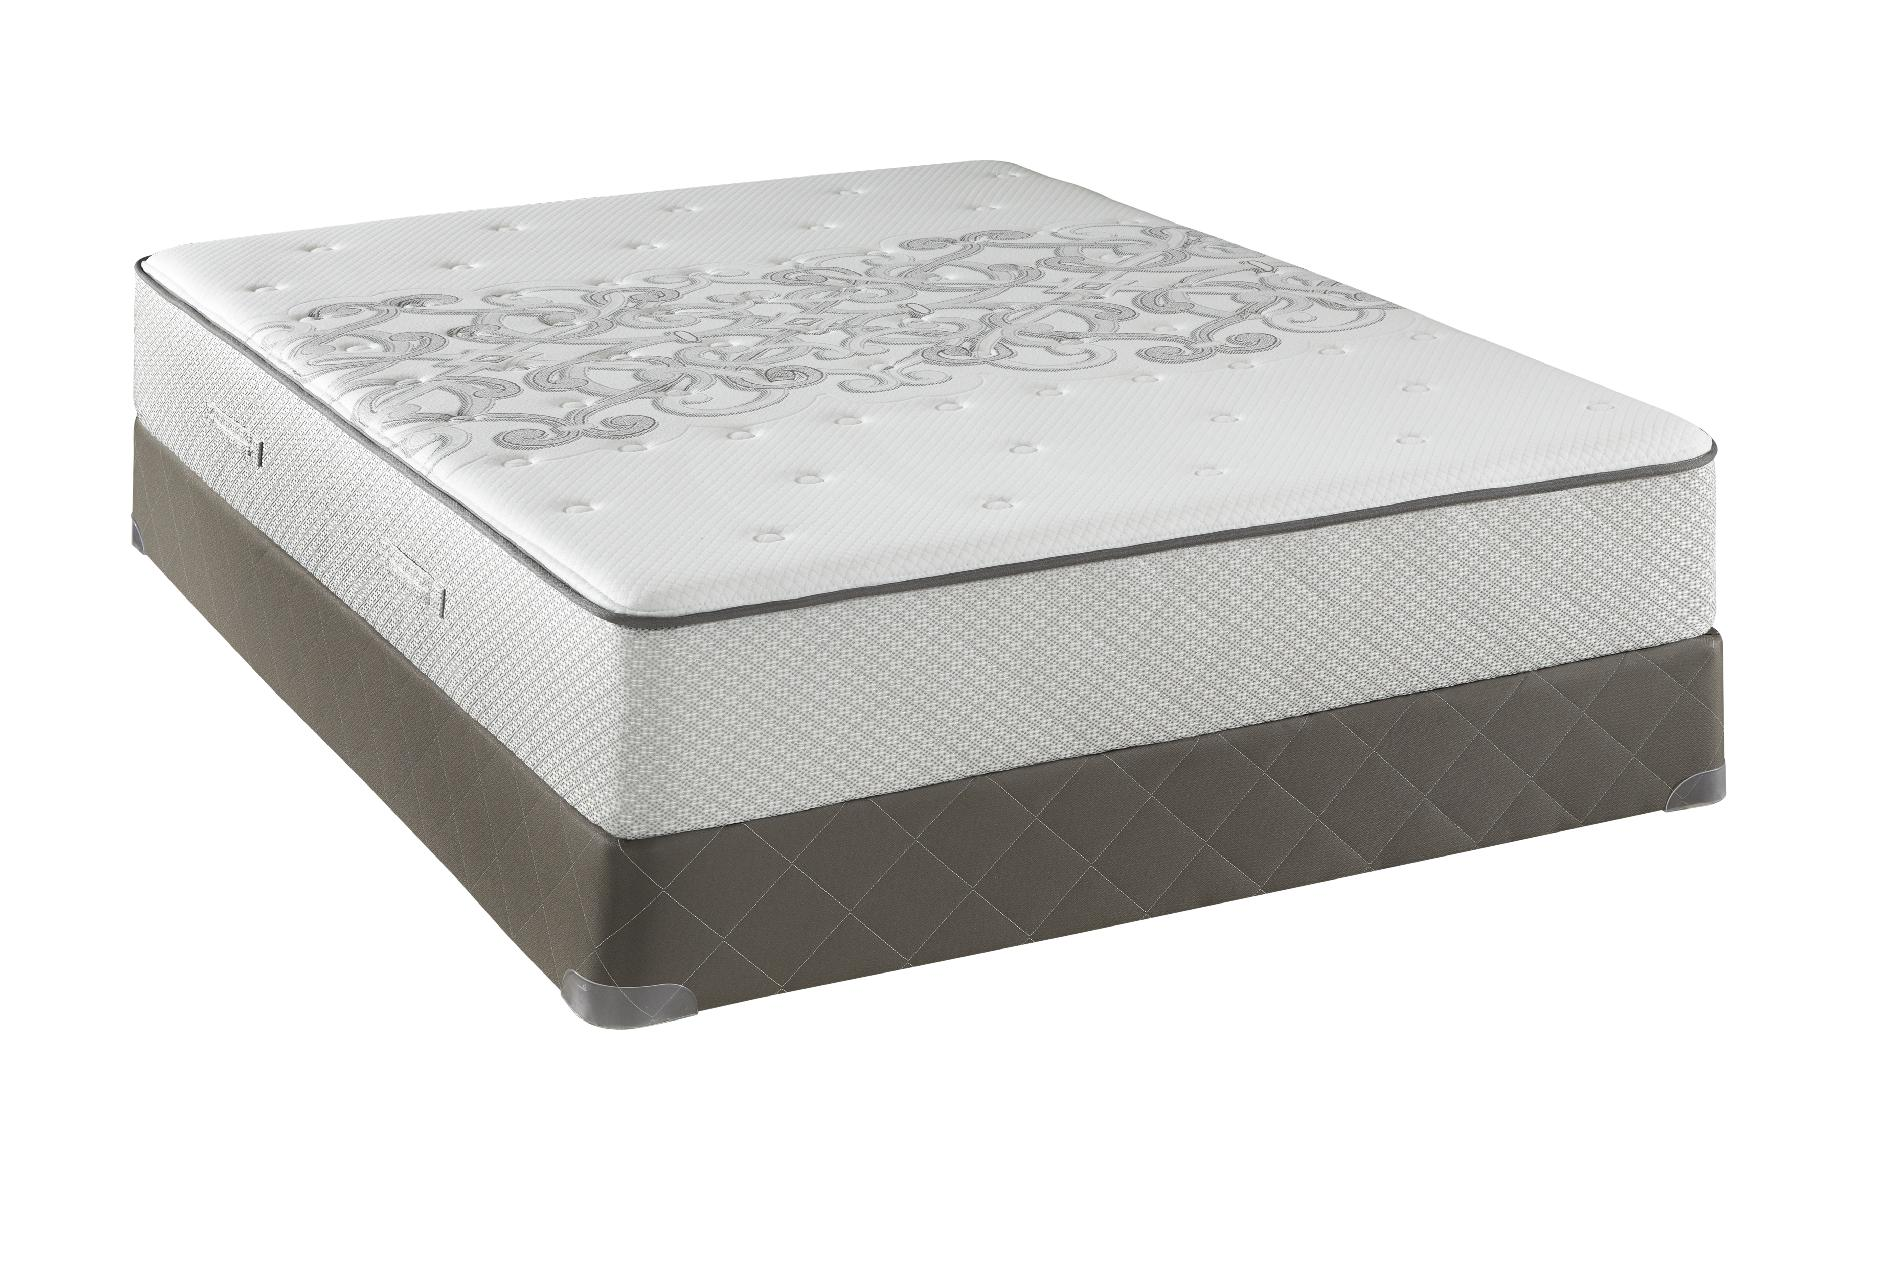 Sealy Posturepedic Fergus Falls Ti2 II, Ultra Firm, Queen Mattress Only